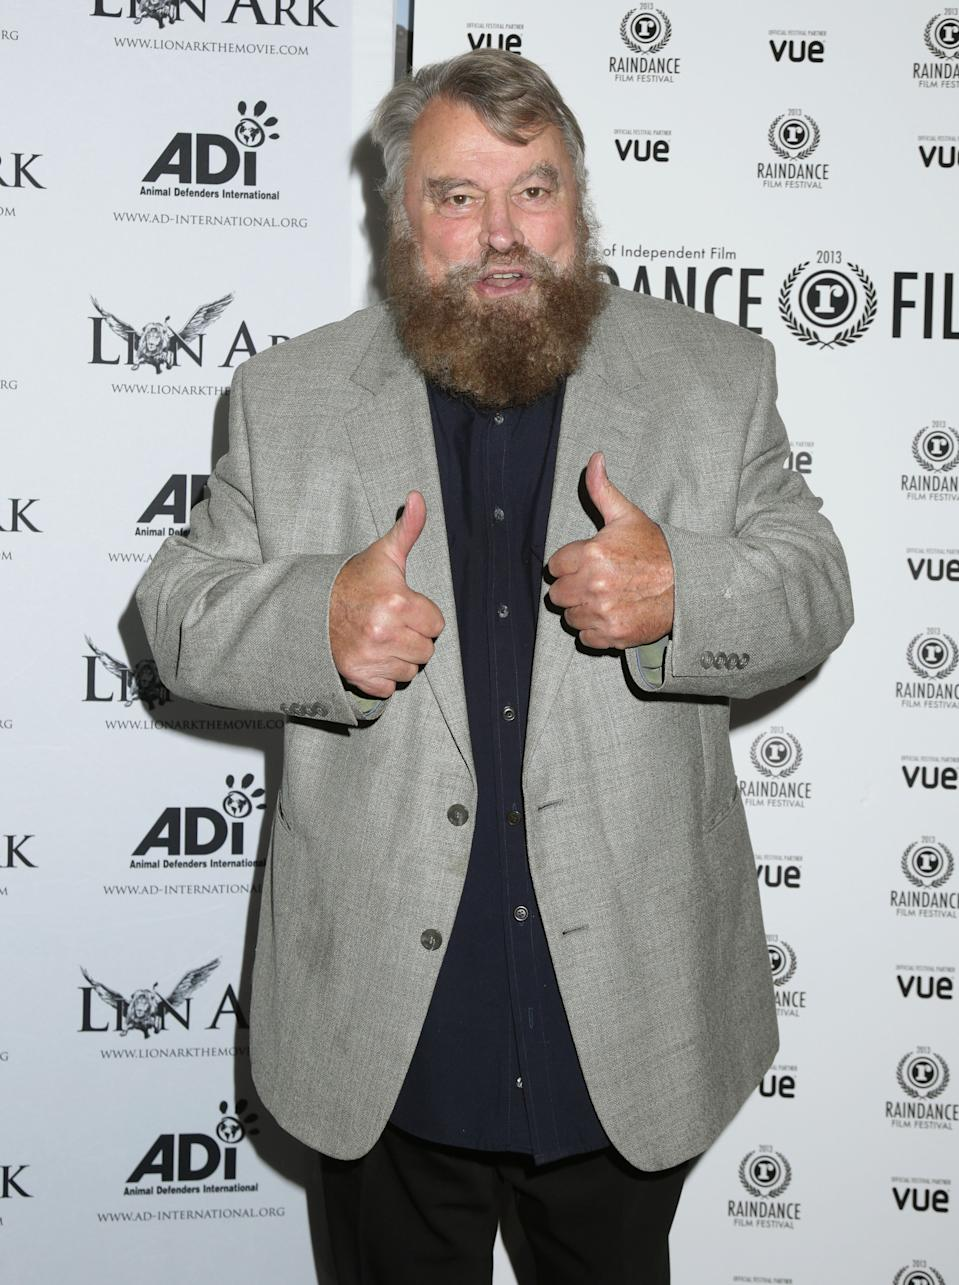 Brian Blessed attending the premiere of Lion Ark, at Vue Piccadilly in central London.